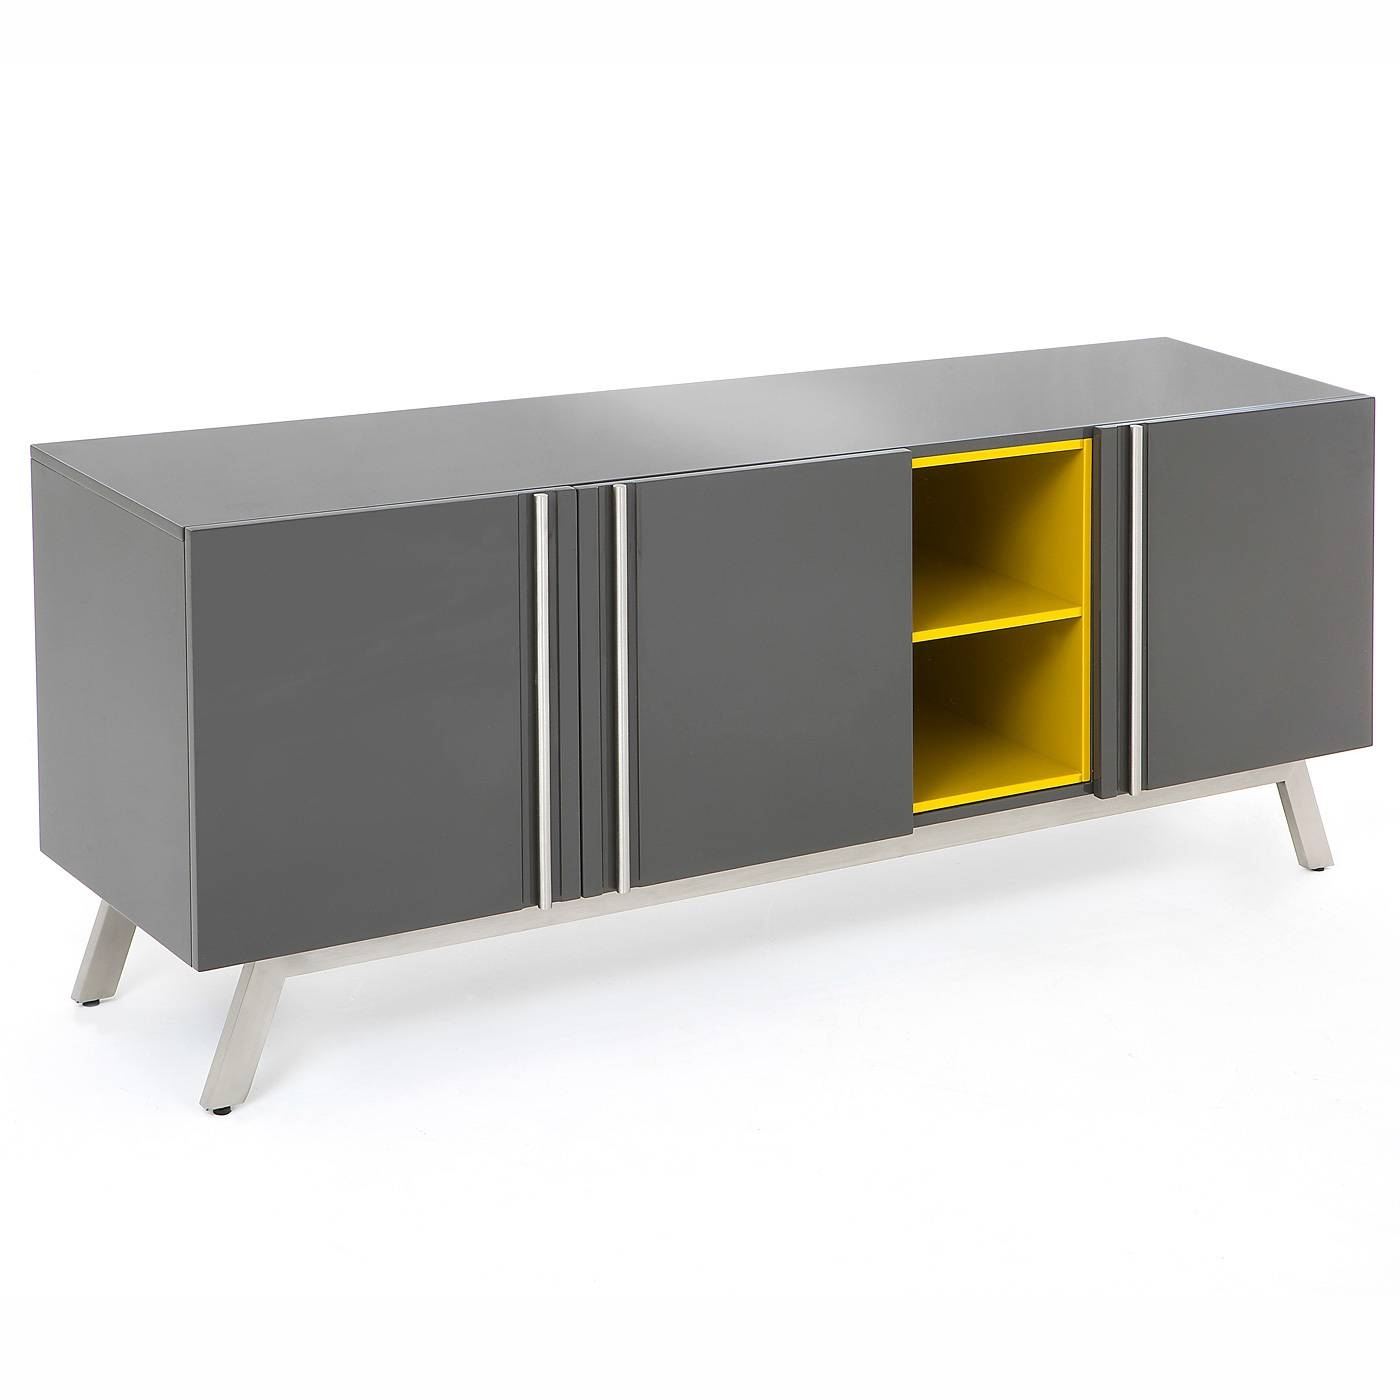 ✓ Vestina Grey/yellow High Gloss Large Sideboard Redtree, Red Throughout Most Recent High Gloss Grey Sideboards (View 11 of 15)